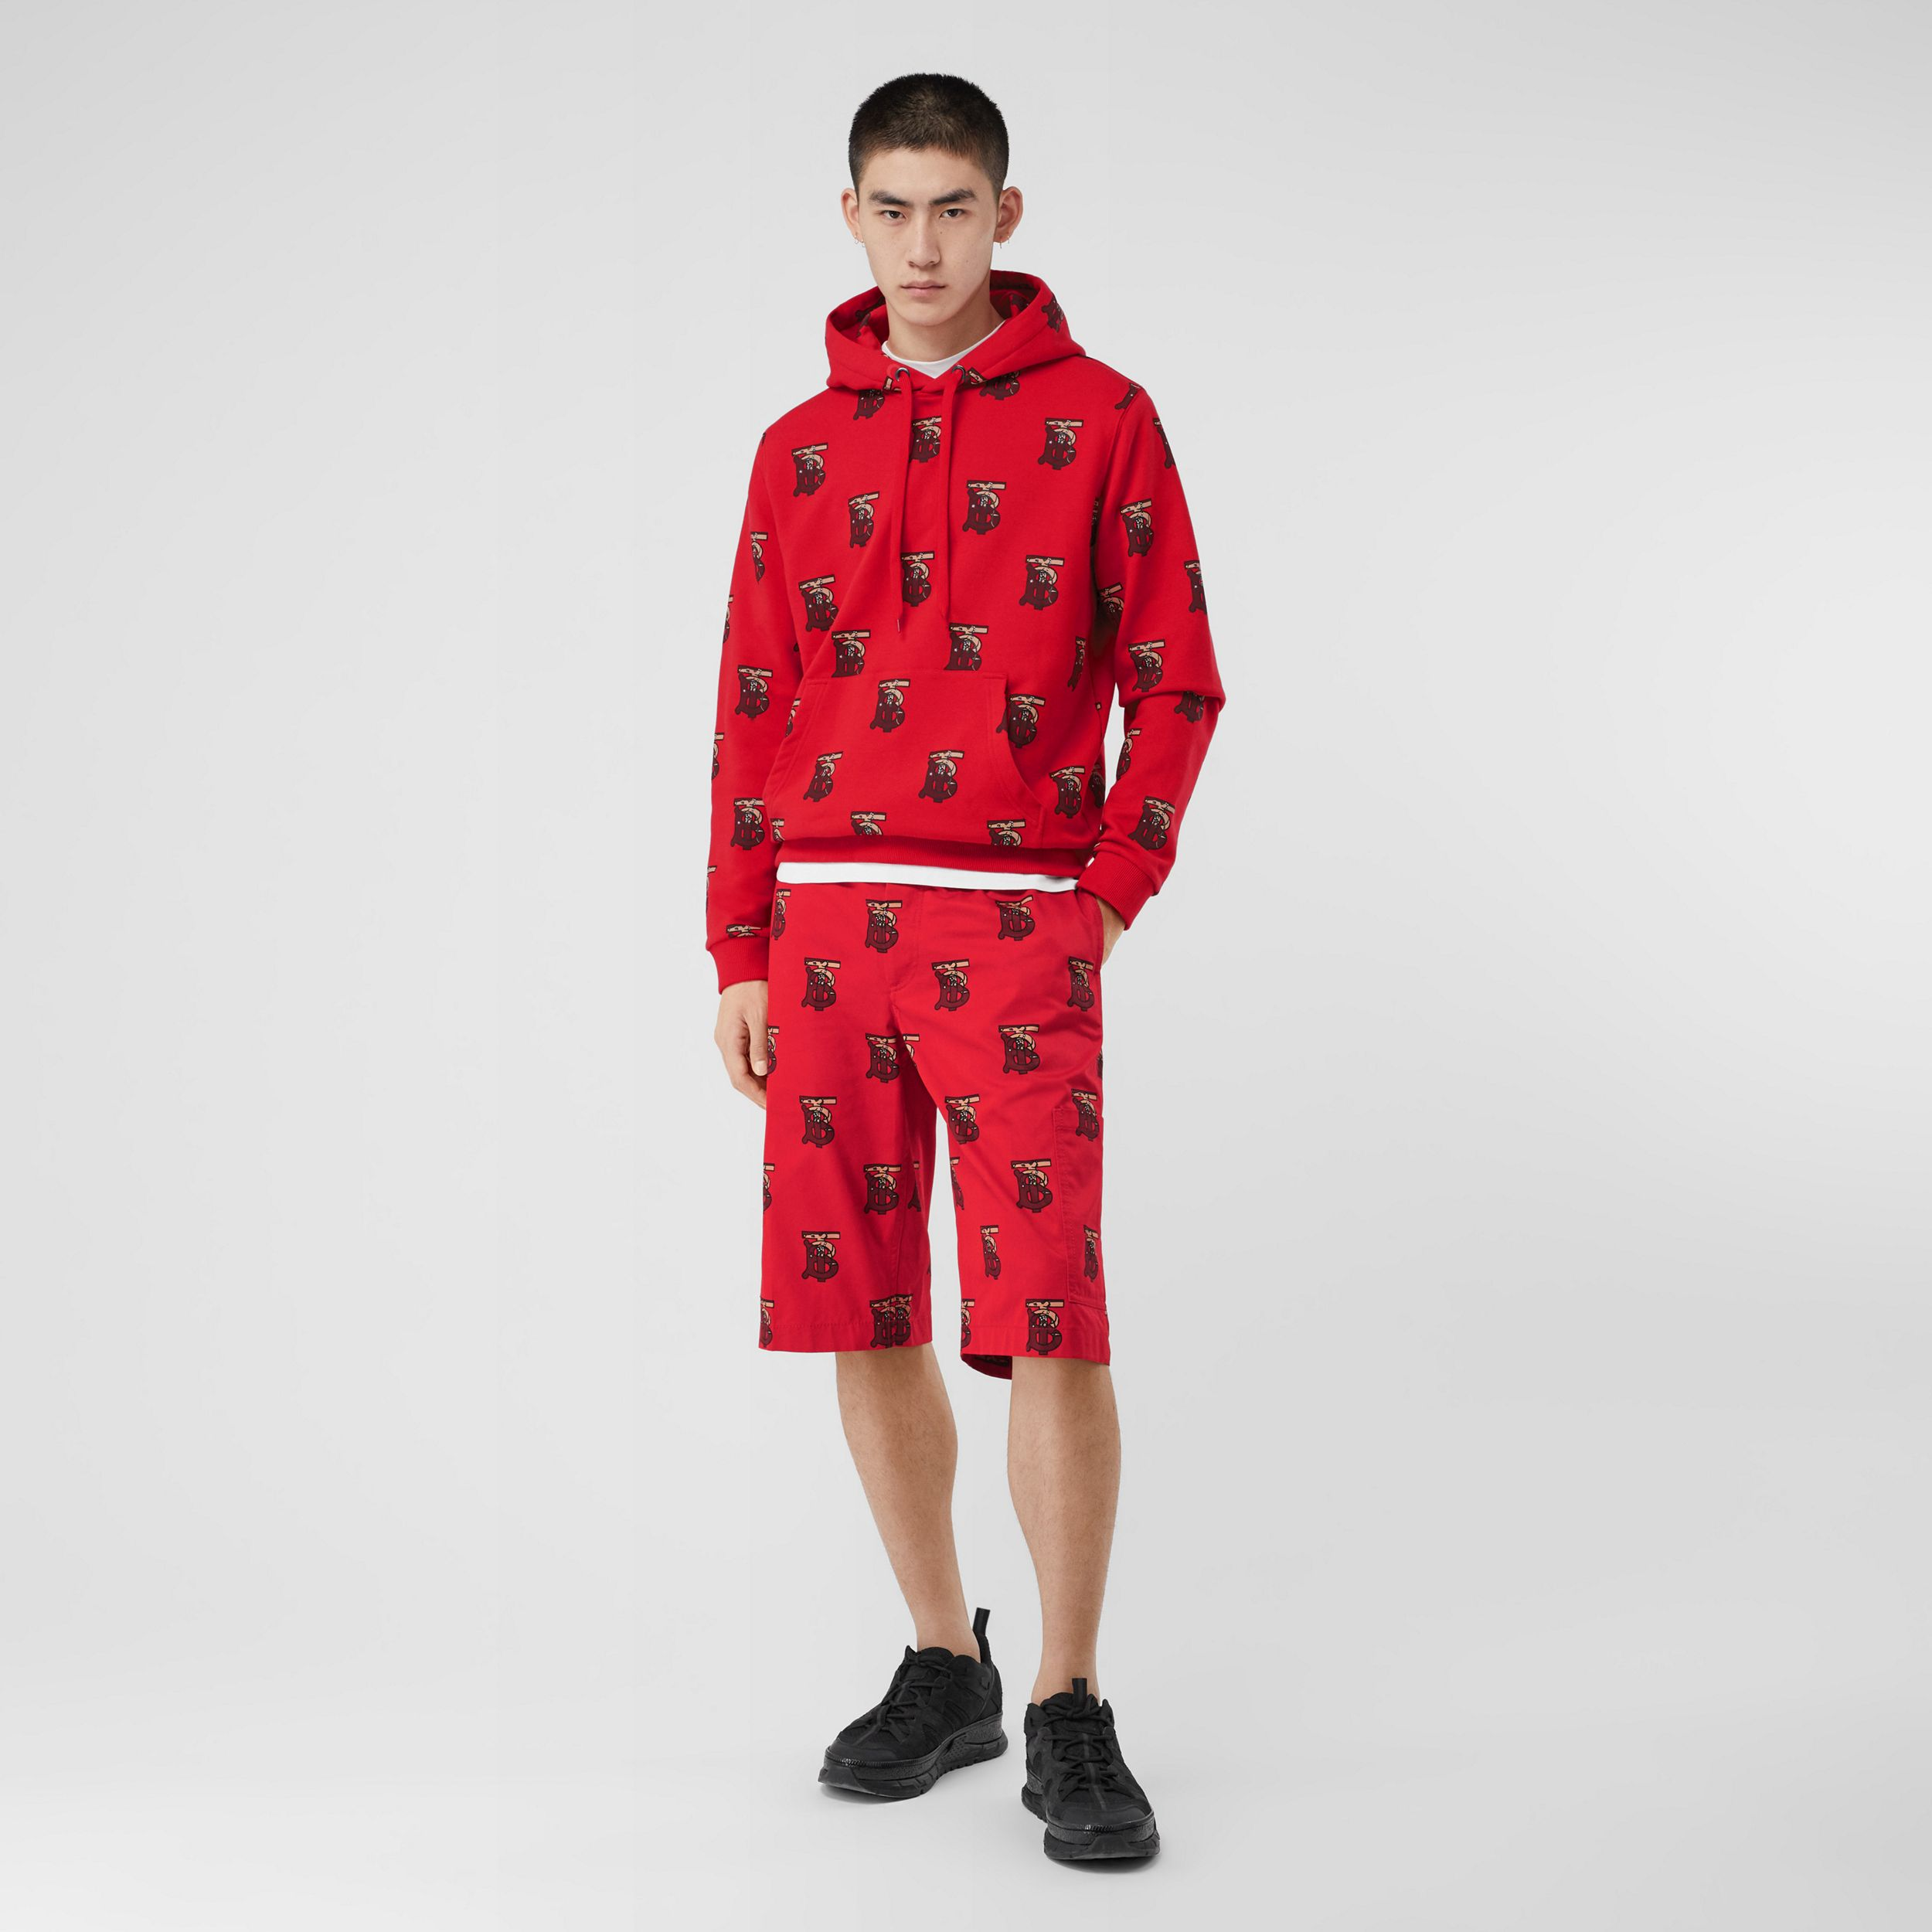 Monogram Motif Cotton Oversized Hoodie in Bright Red - Men | Burberry Hong Kong S.A.R. - 1